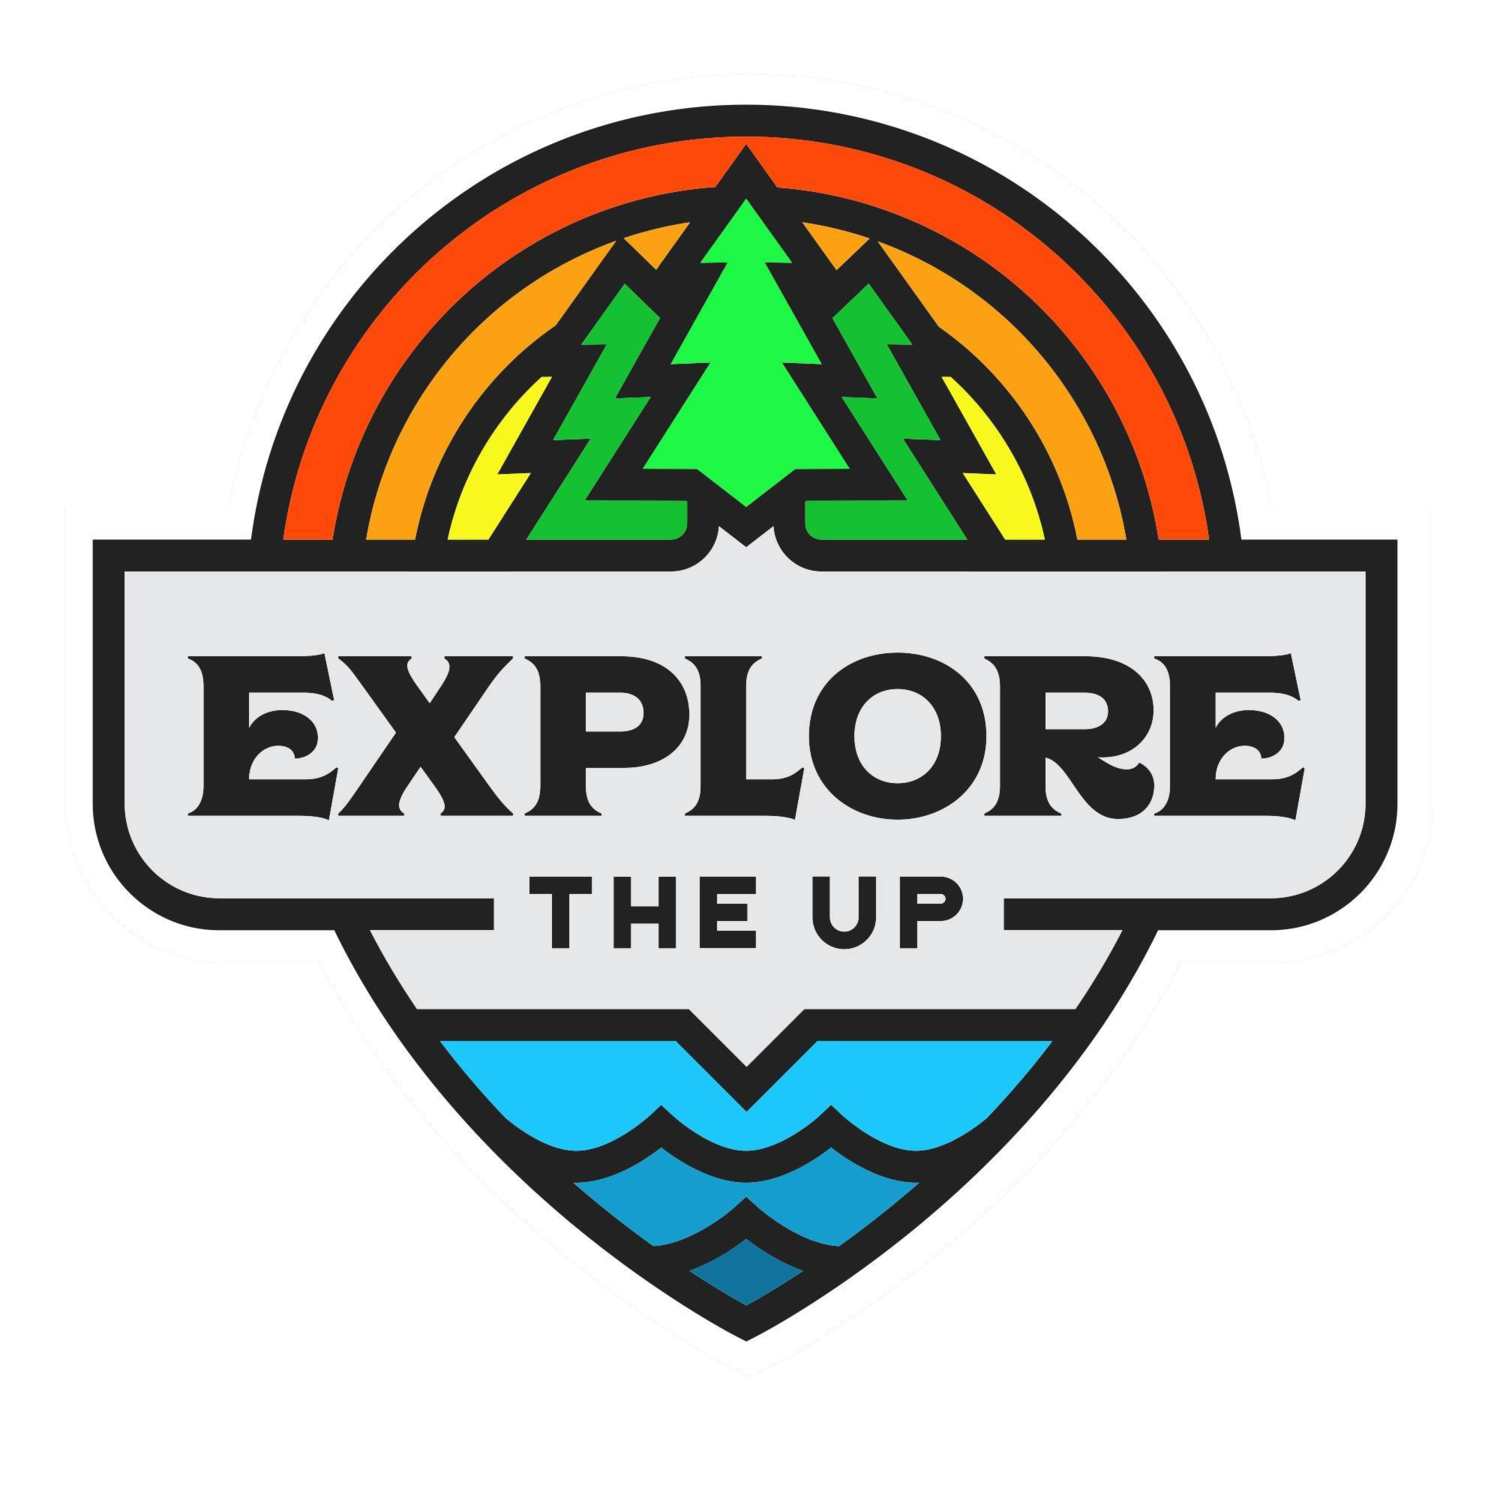 Explore the UP